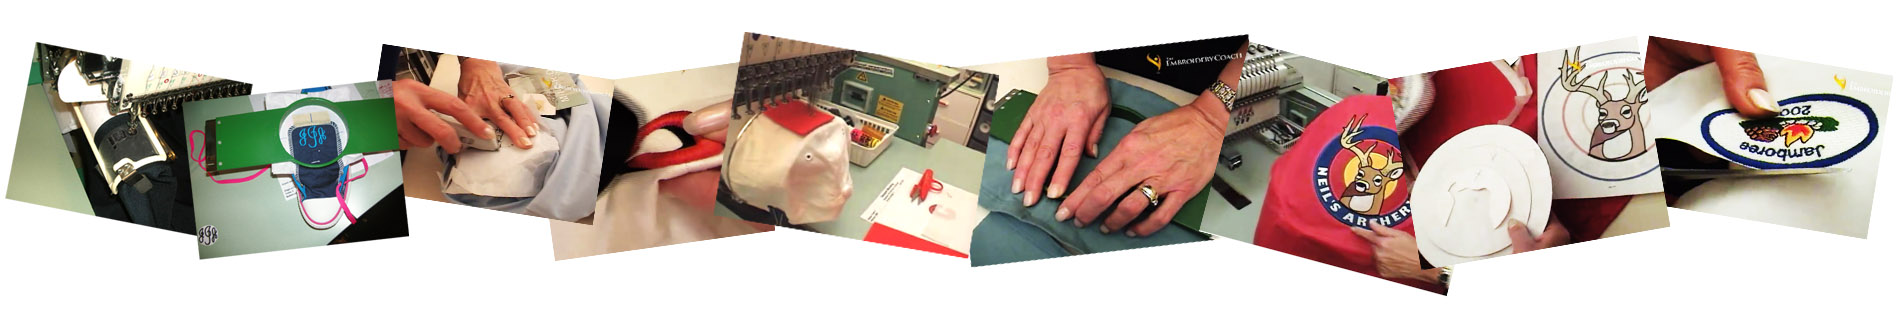 The Embroidery Training Resource Center